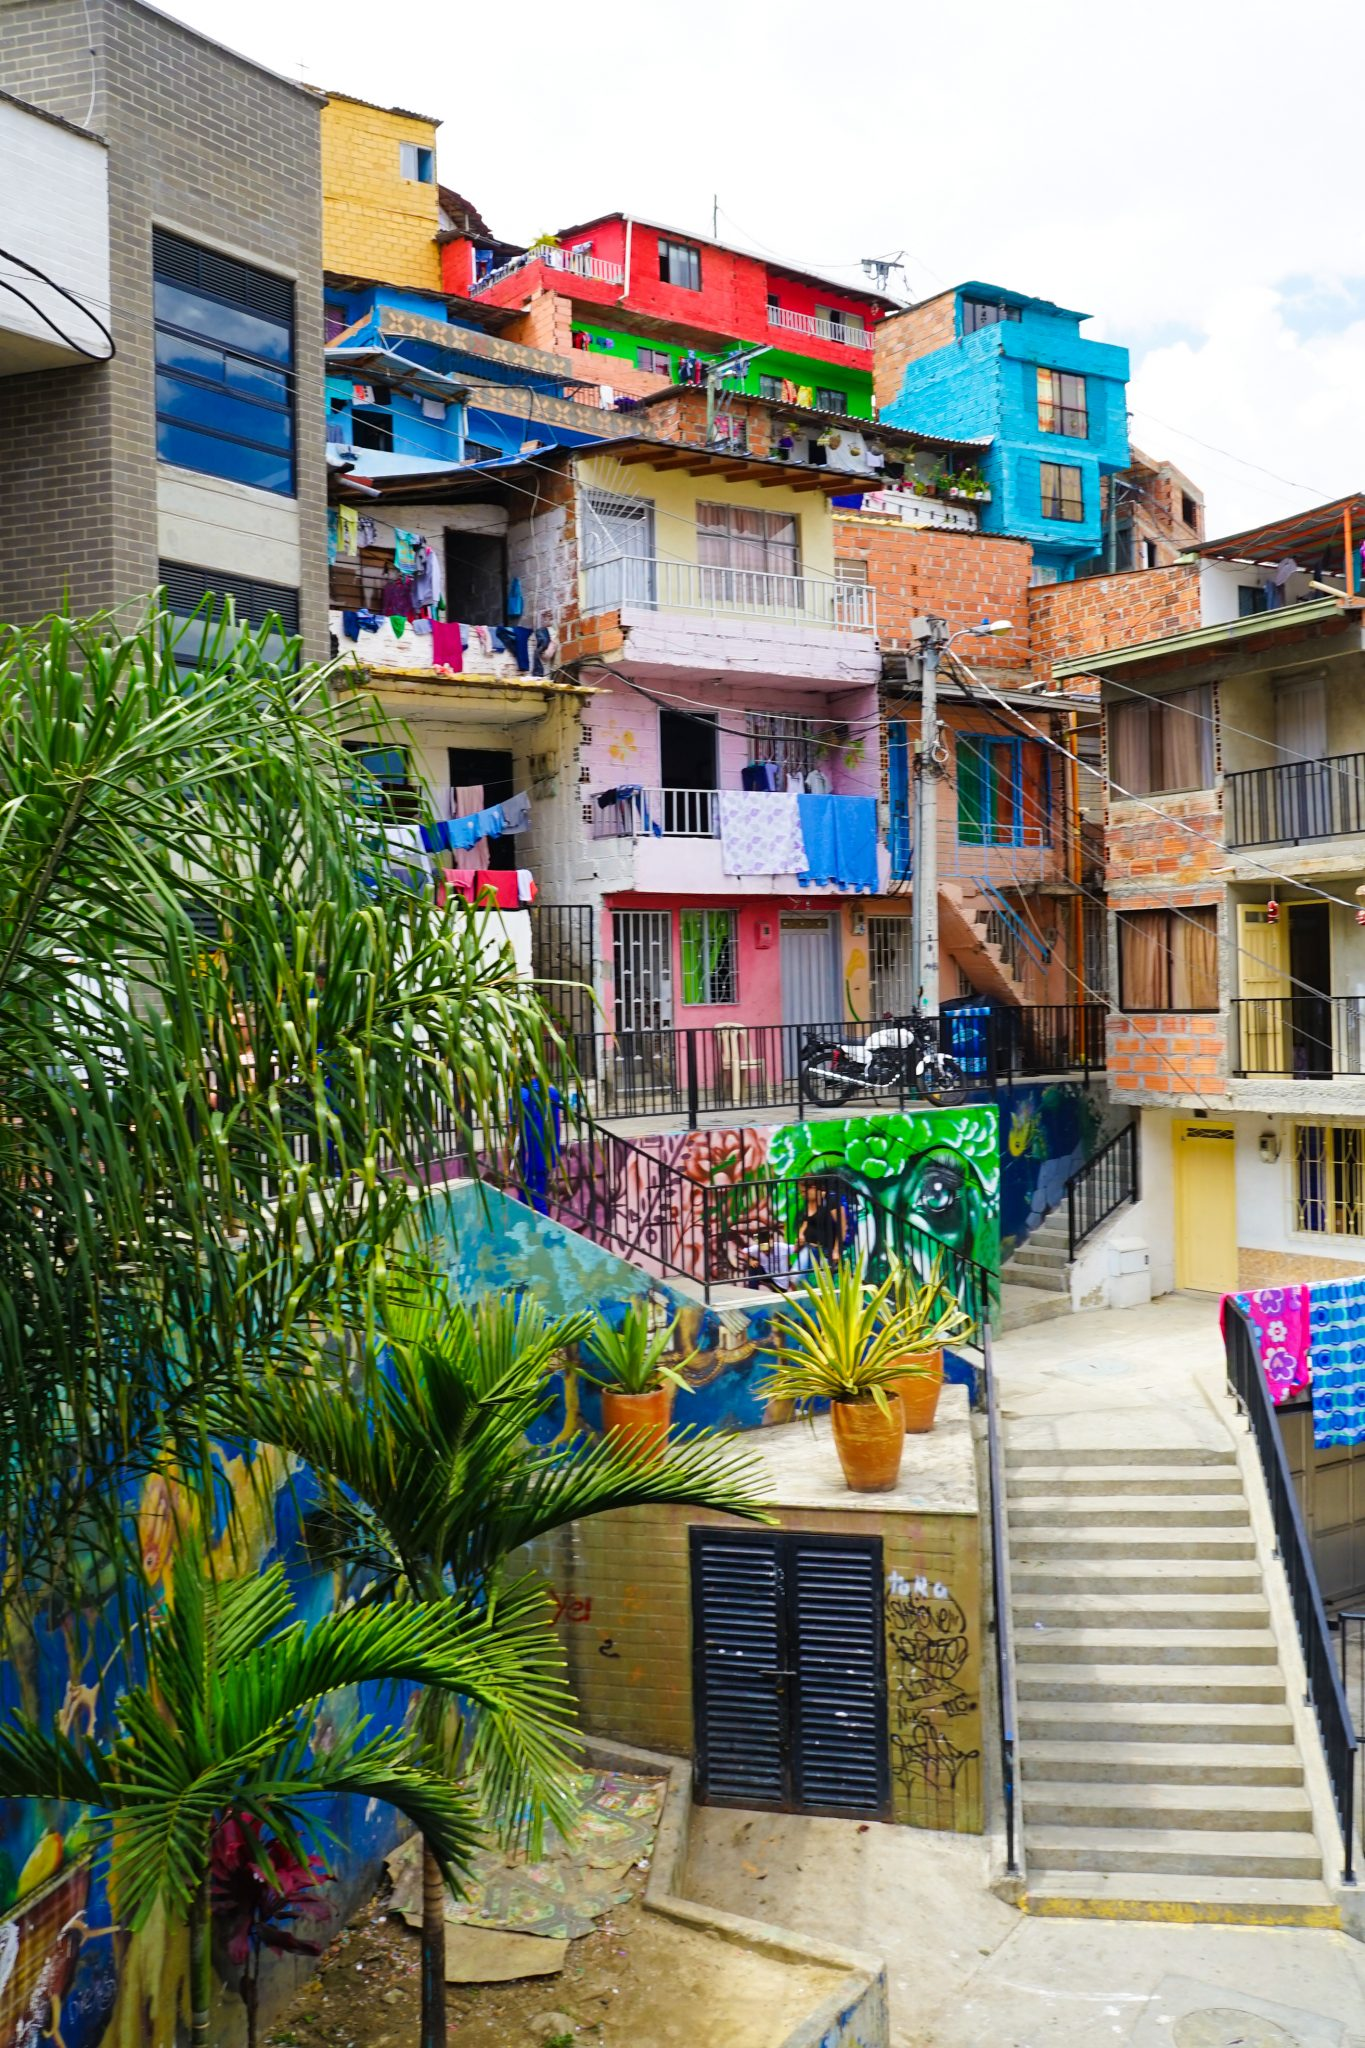 Street art in Comuna 13, from the  Inspired by Maps website